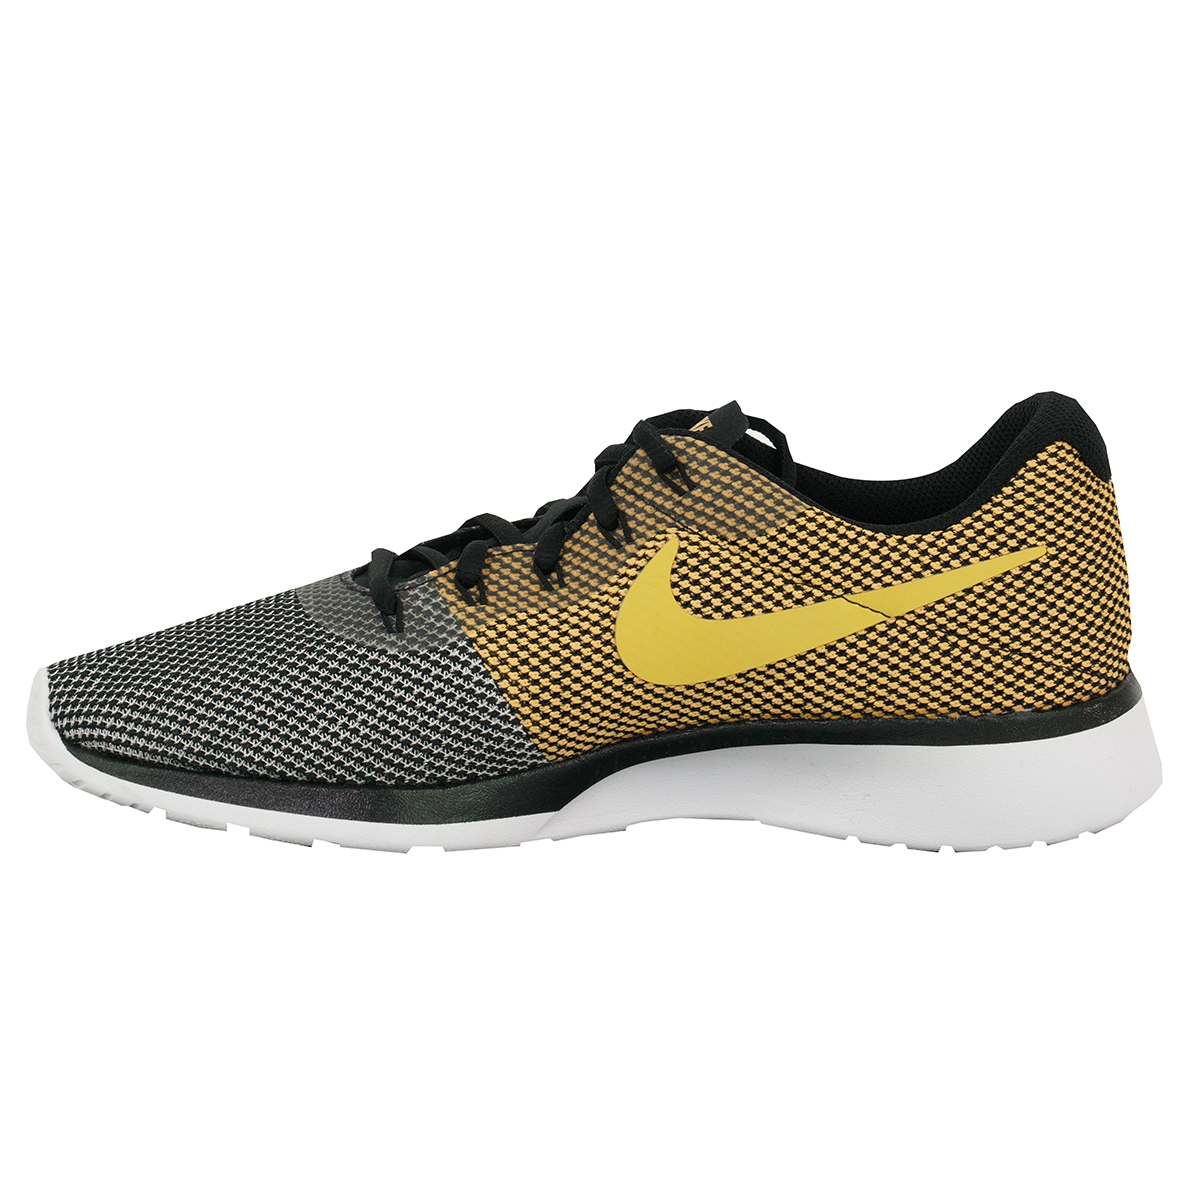 Nike-Men-039-s-Tanjun-Racer-Running-Shoes thumbnail 7